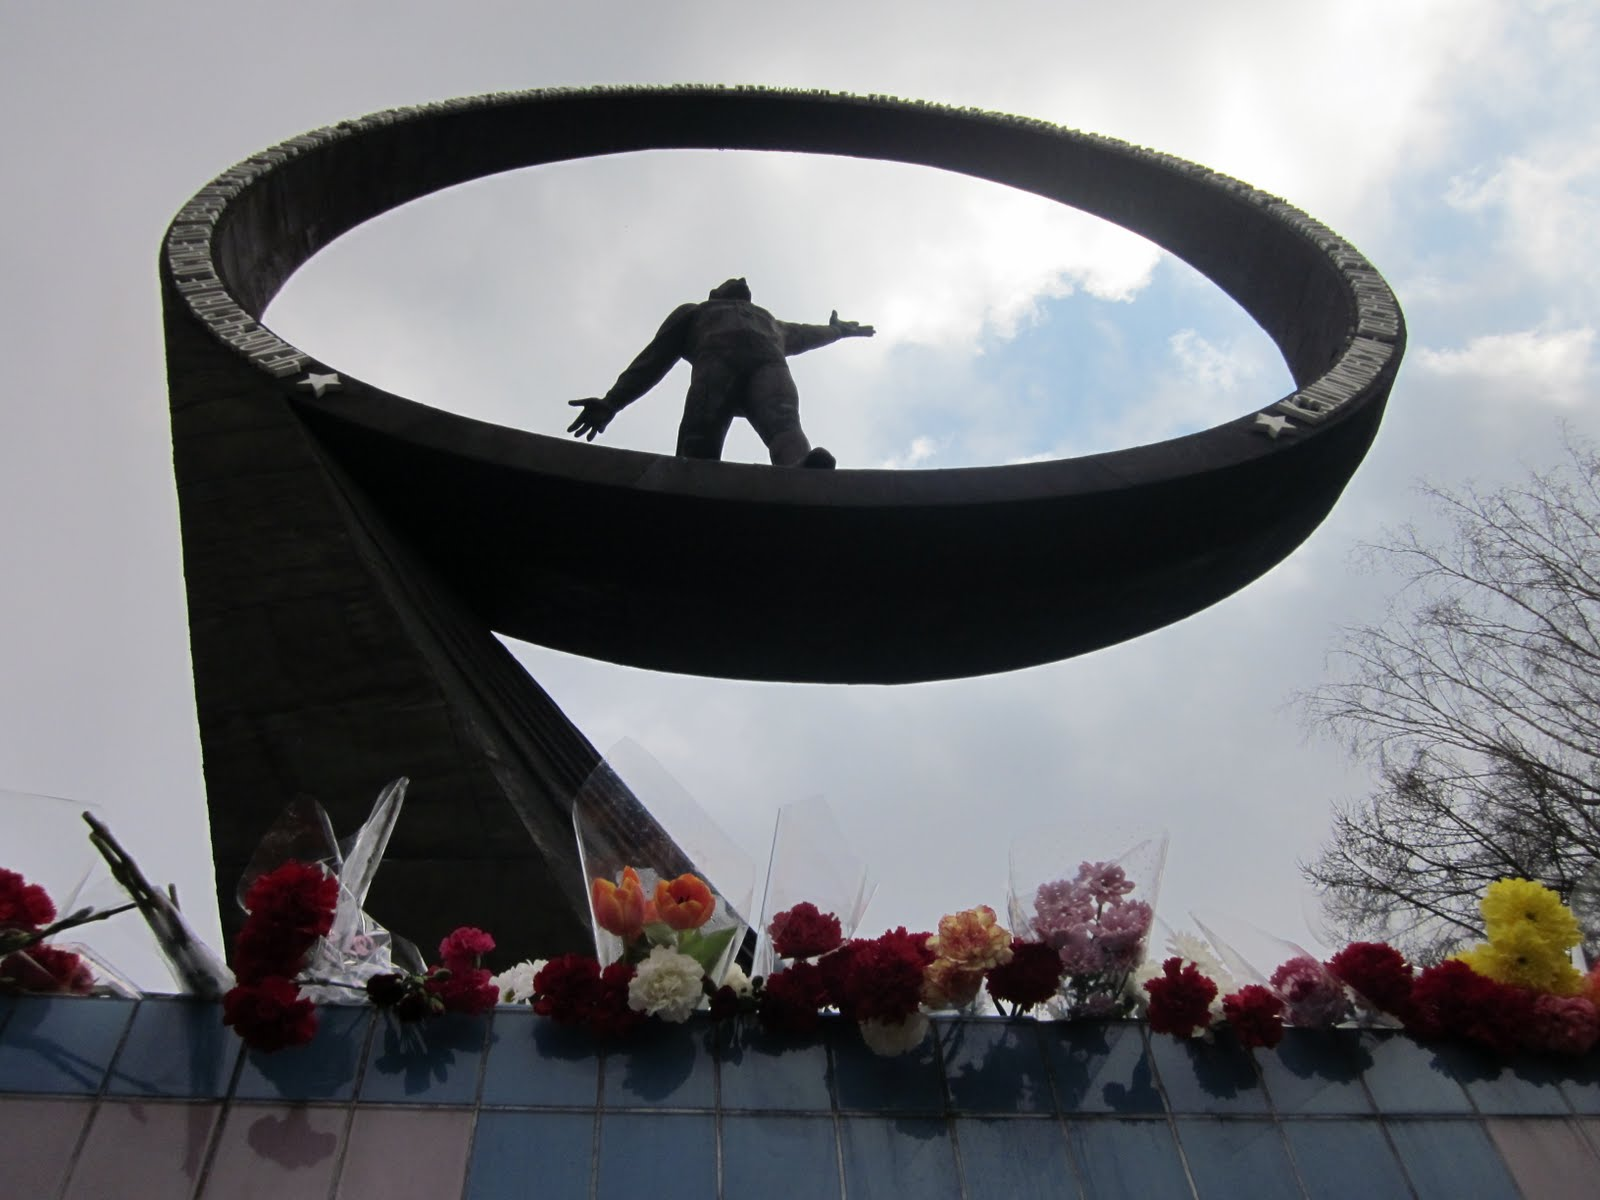 Soviet memorial dedicated to cosmonauts from kaliningrad - If You Are Studying Russian Language Besides Chekhov Or Tchaikovsky You Should Also Know About Yuri Gagarin A Few Years Ago My Teacher In Singapore